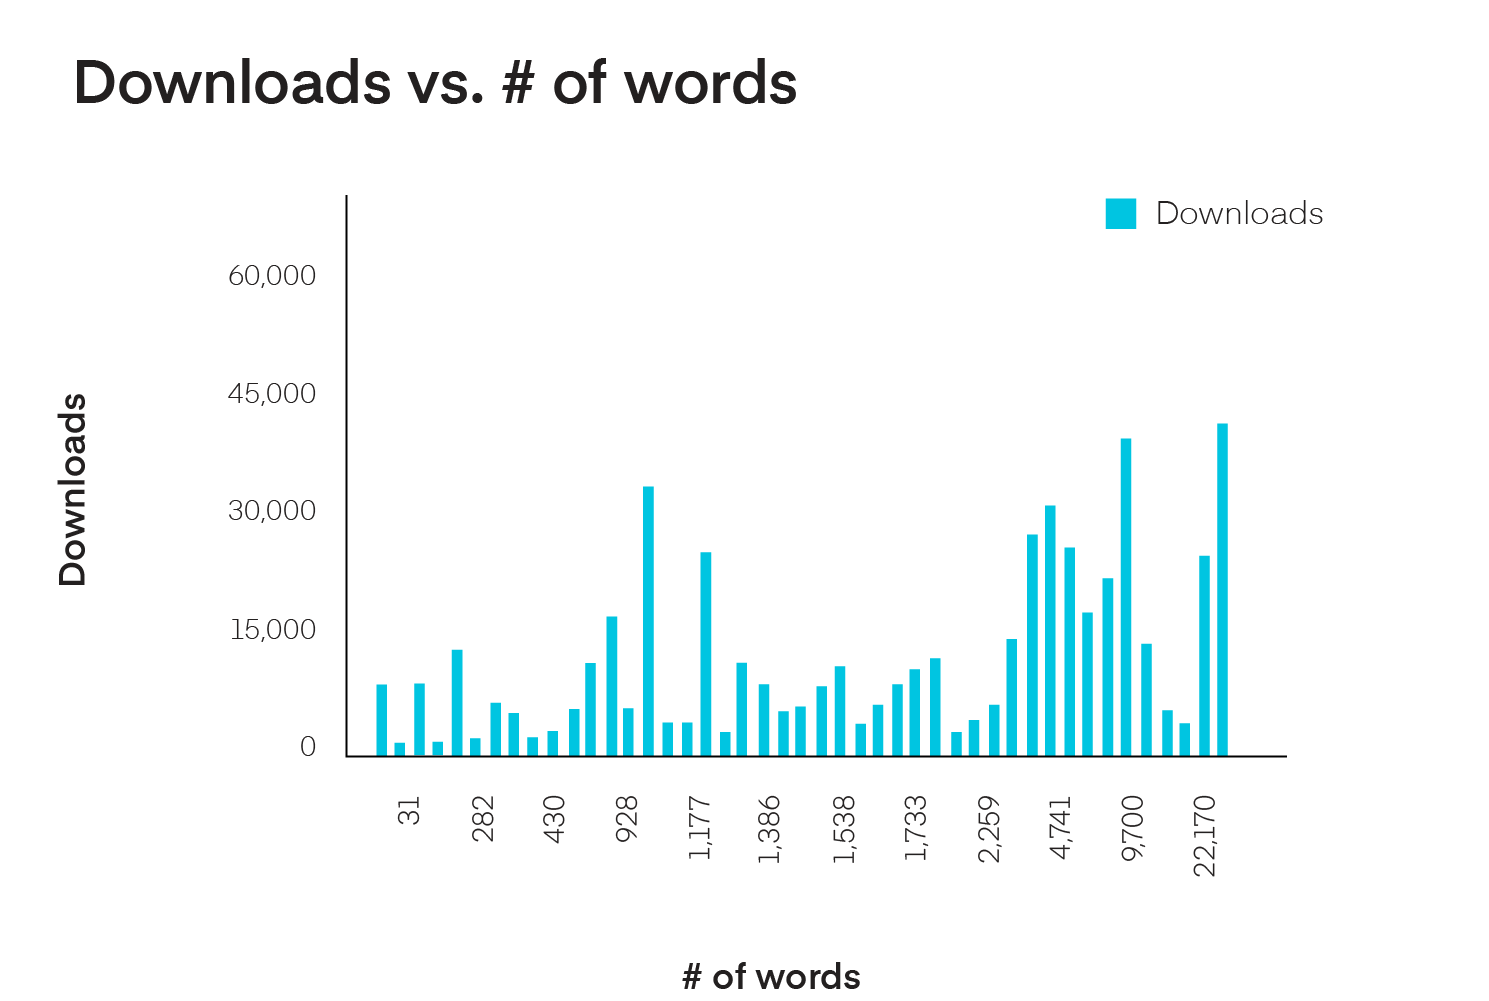 Bar chart of downloads vs words